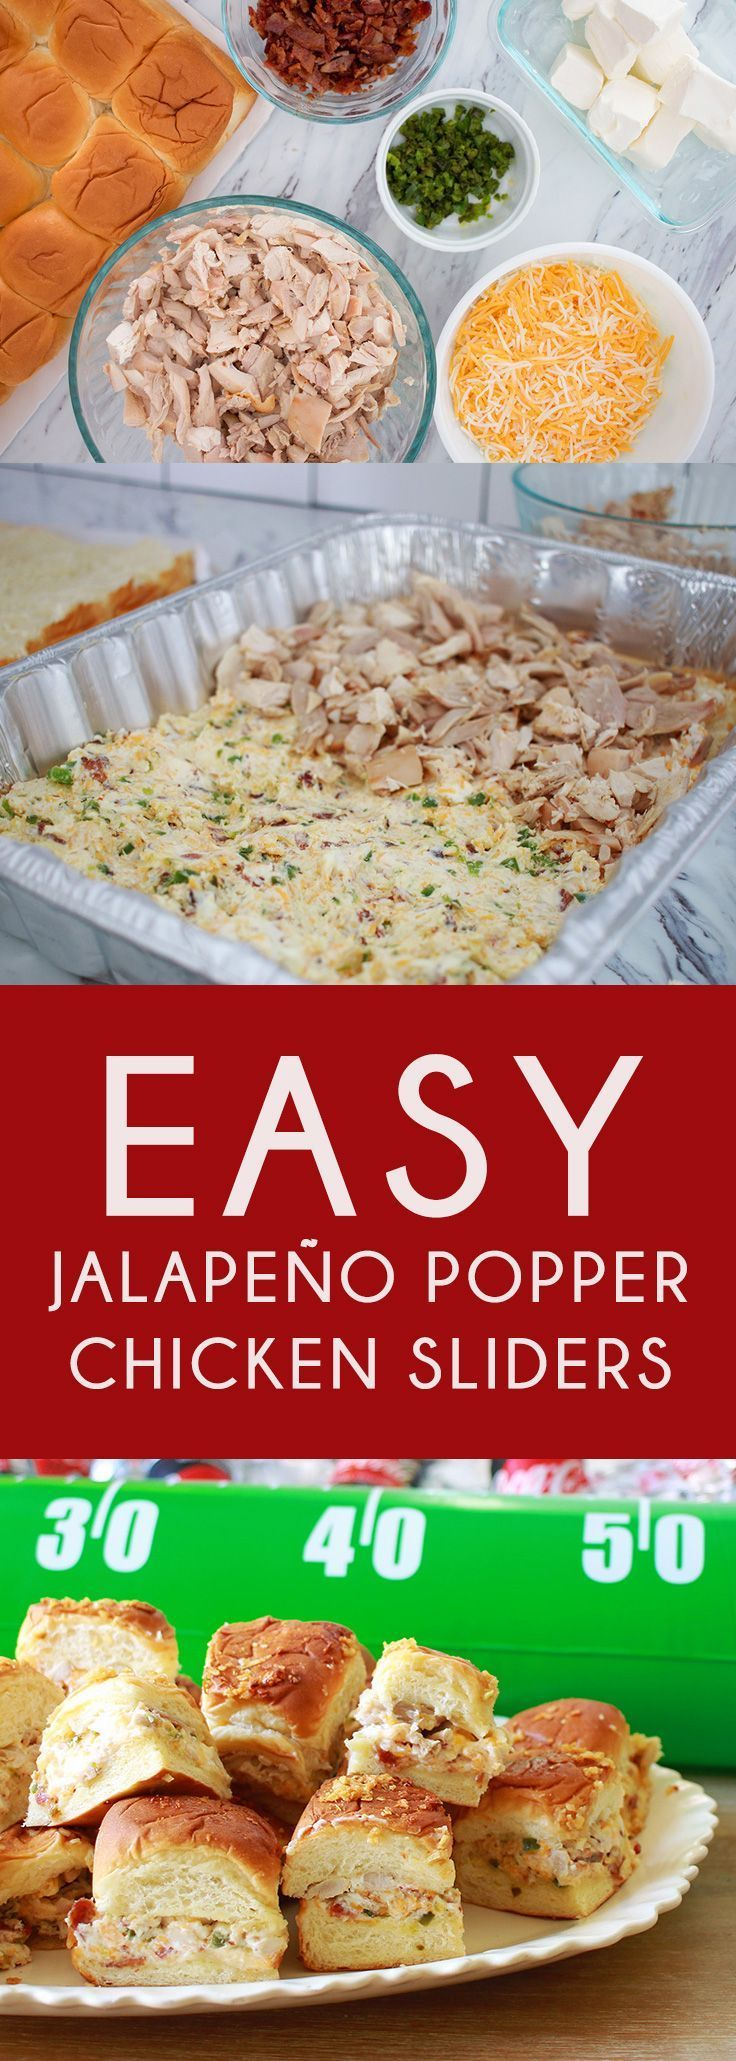 Easy Jalapeño Popper Chicken Sliders. Game day sliders for a crowd. Such easy jalapeno sliders that will have everyone scream TOUCHDOWN! The best rotisserie chicken sliders for game day. Easy shredded chicken sliders. OMG jalapeno chicken sliders recipe are delicious. You just gotta try these jalapeno cream cheese sliders